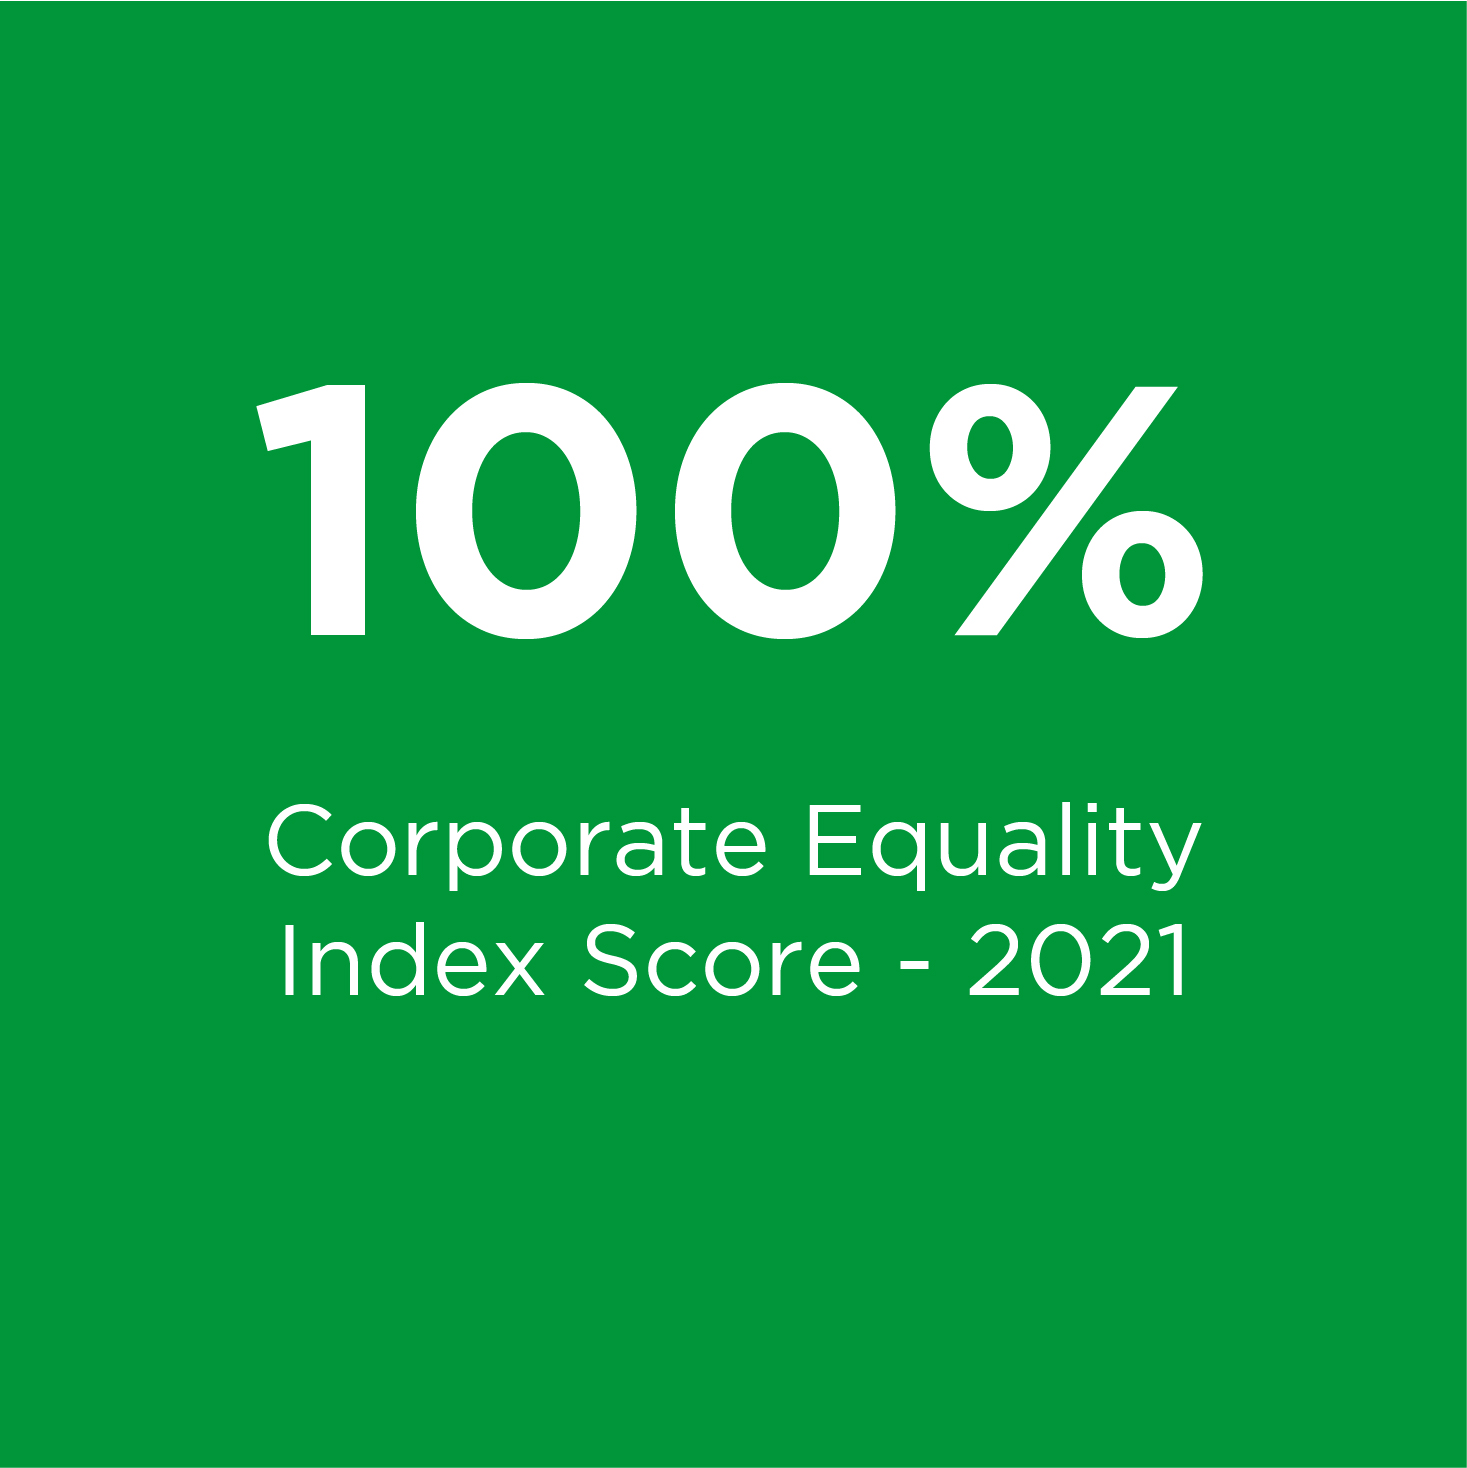 News - 100 - Corporate Equality Index Score - 2020